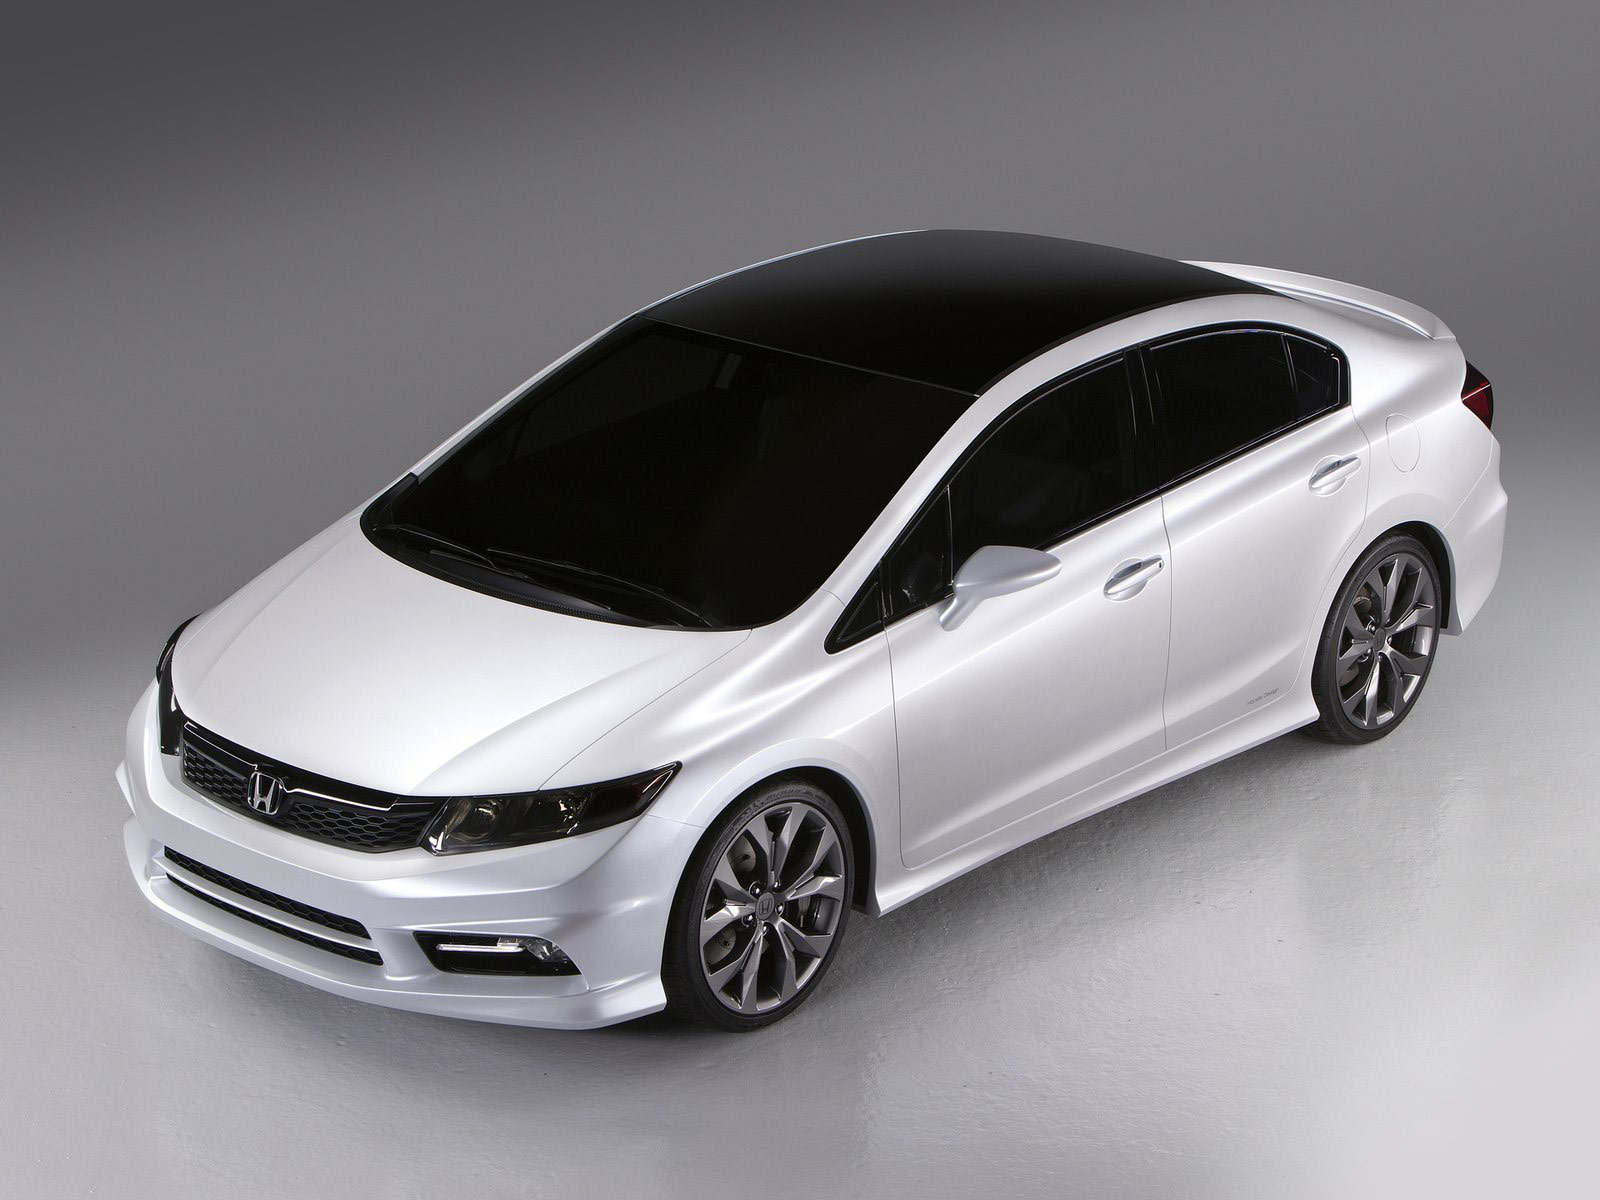 2011 Honda Civic Concept Car Photos Accident Lawyers Info